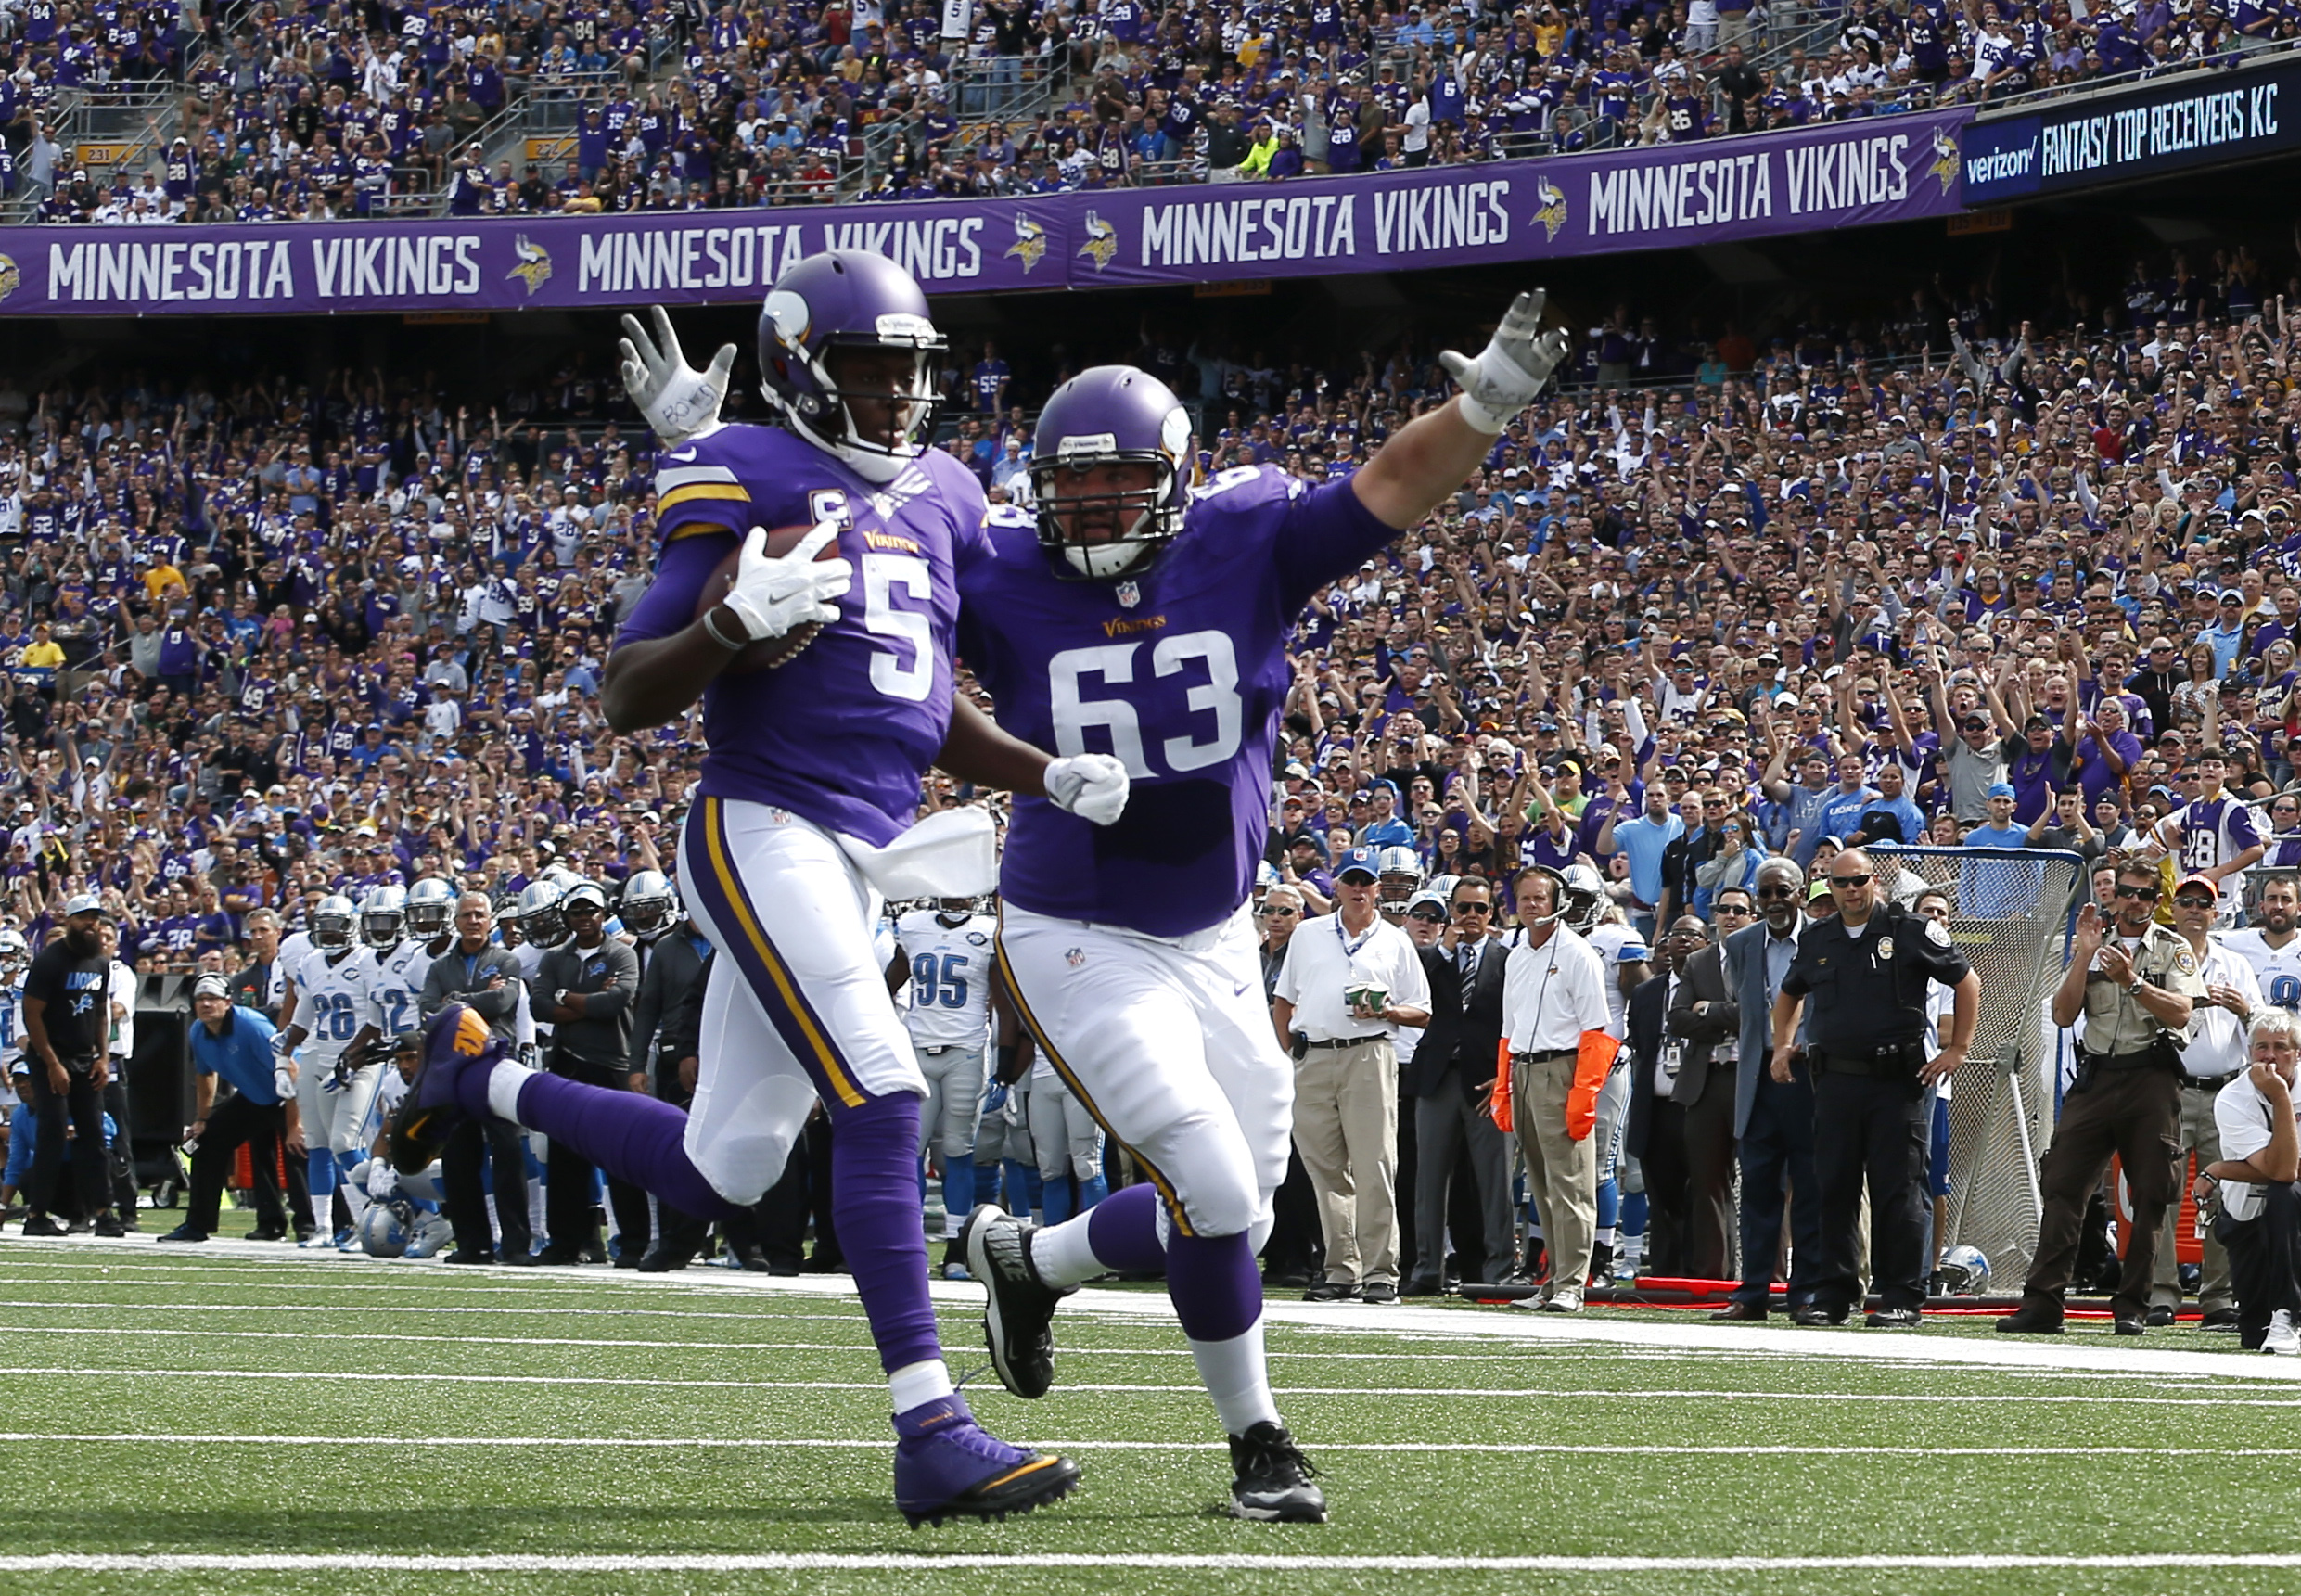 Minnesota Vikings quarterback Teddy Bridgewater (5) scores a touchdown against the Detroit Lions as Brandon Fusco (63) celebrates in the first half of an NFL football game in Minneapolis, Sunday, Sept. 20, 2015. (AP Photo/Jim Mone)